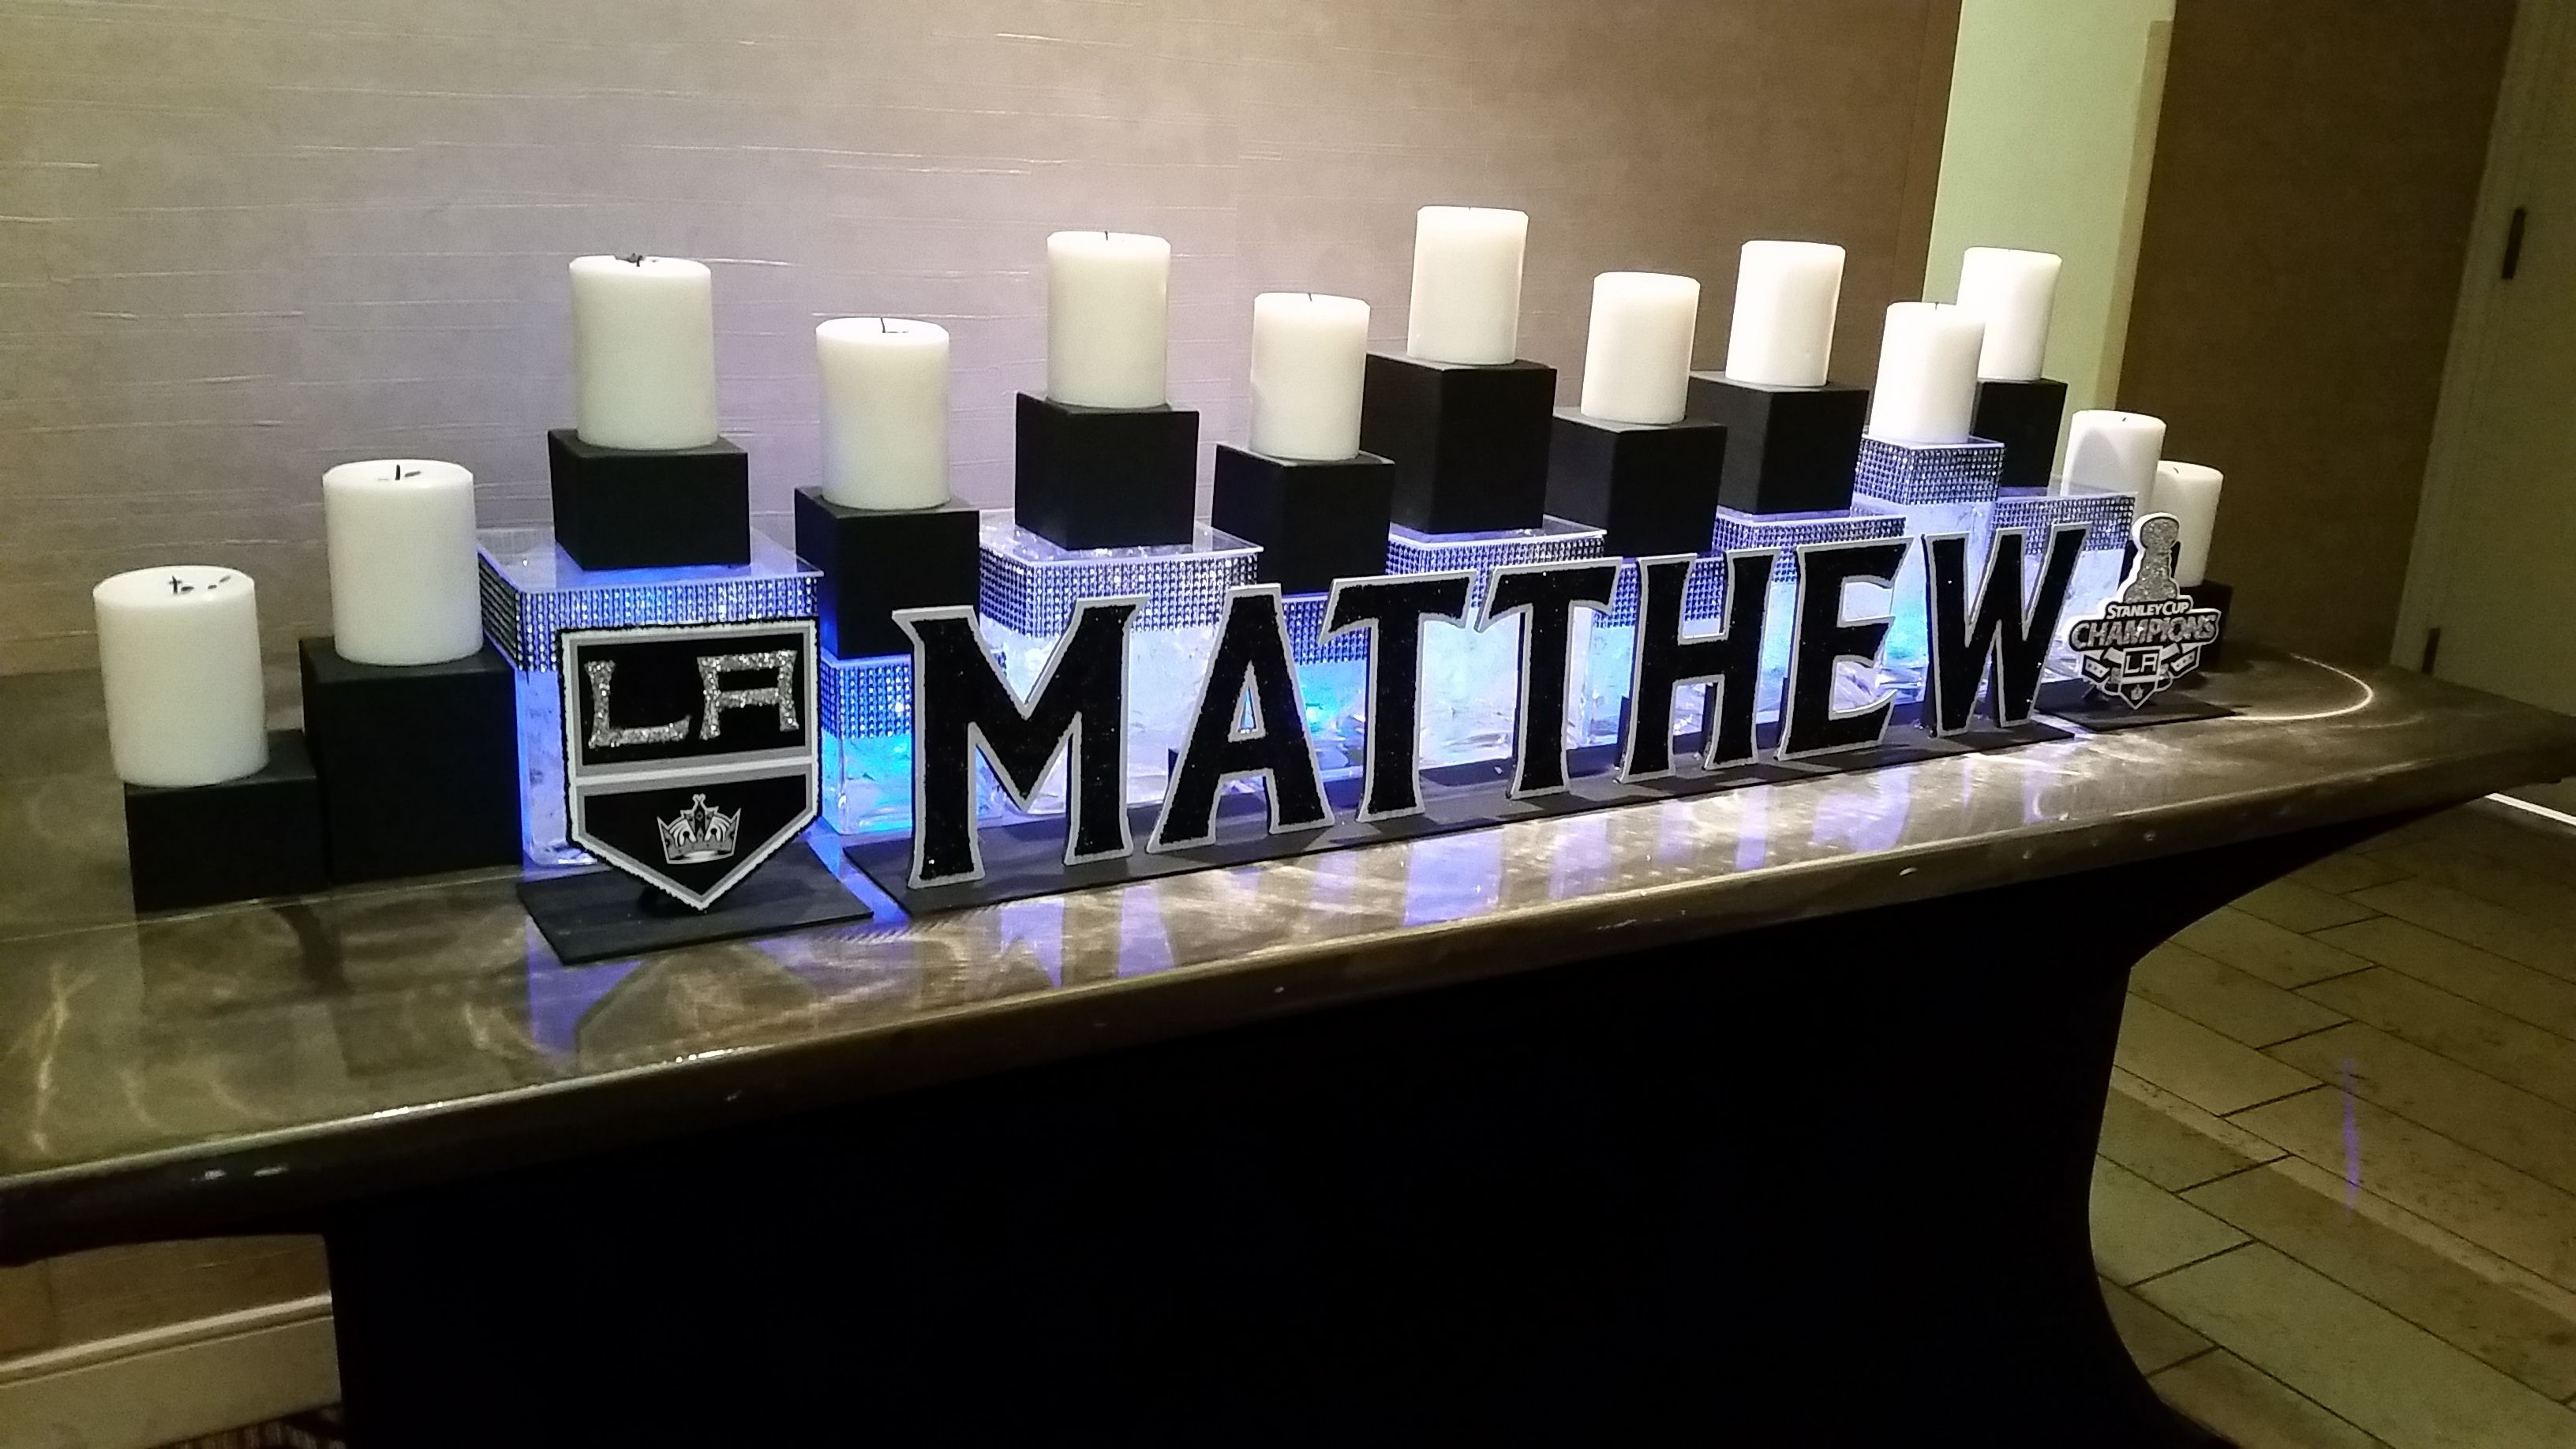 Hockey-themed candle lighting display for a bar mitzvah ... on bar mitzvah and bat, candle lighting ceremony ideas, bar mitzvah cakes, bar mitzvah cards, bar mitzvah ceremony steps, bar mitzvah giveaways, bar mitzvah centerpieces, sweet 16 candle ideas, bar mitzvah graphics, bar mitzvah quotes, sweet sixteen candle ceremony holders ideas, bar mitzvah favor gifts, pinterest lighting ideas, led light centerpiece ideas, creative bat mitzvah theme ideas, bar mitzvah themes, christening candle centerpieces ideas, light-up centerpiece ideas, shabbat candle lighting ideas, bat mitzvah party theme ideas,